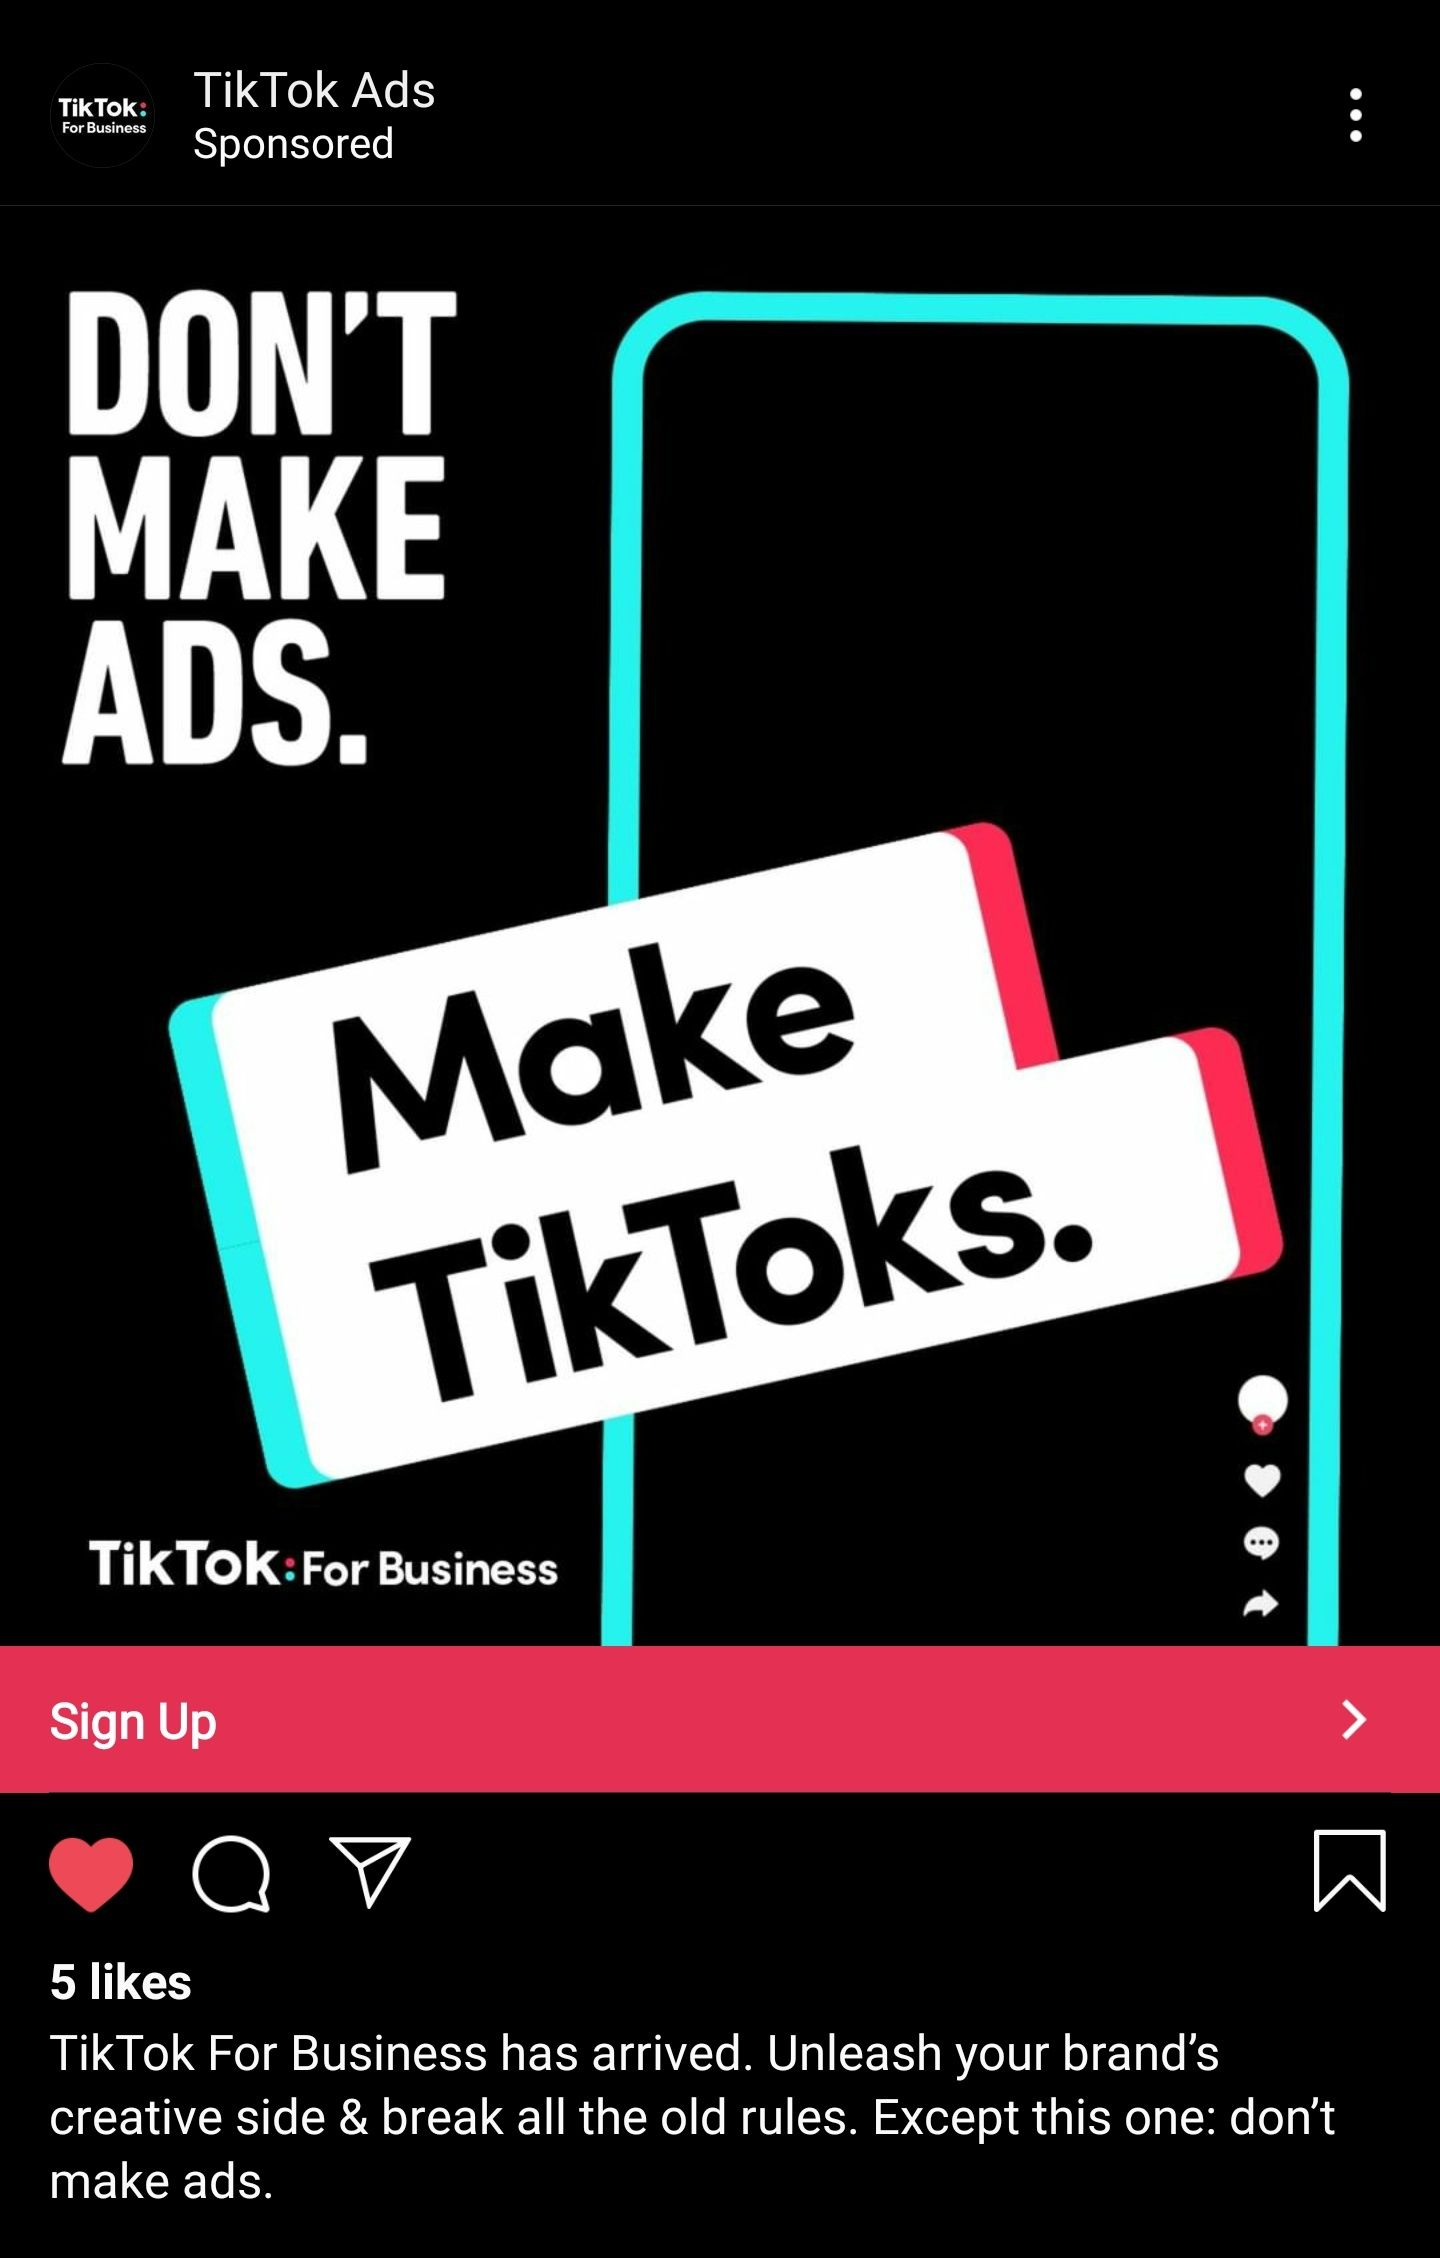 Initials Initials Tiktok On Tiktok Like And Share To Claim Welldone Wewintogether Bestnews Fyp Thisisasign Crush Advice Words Initials